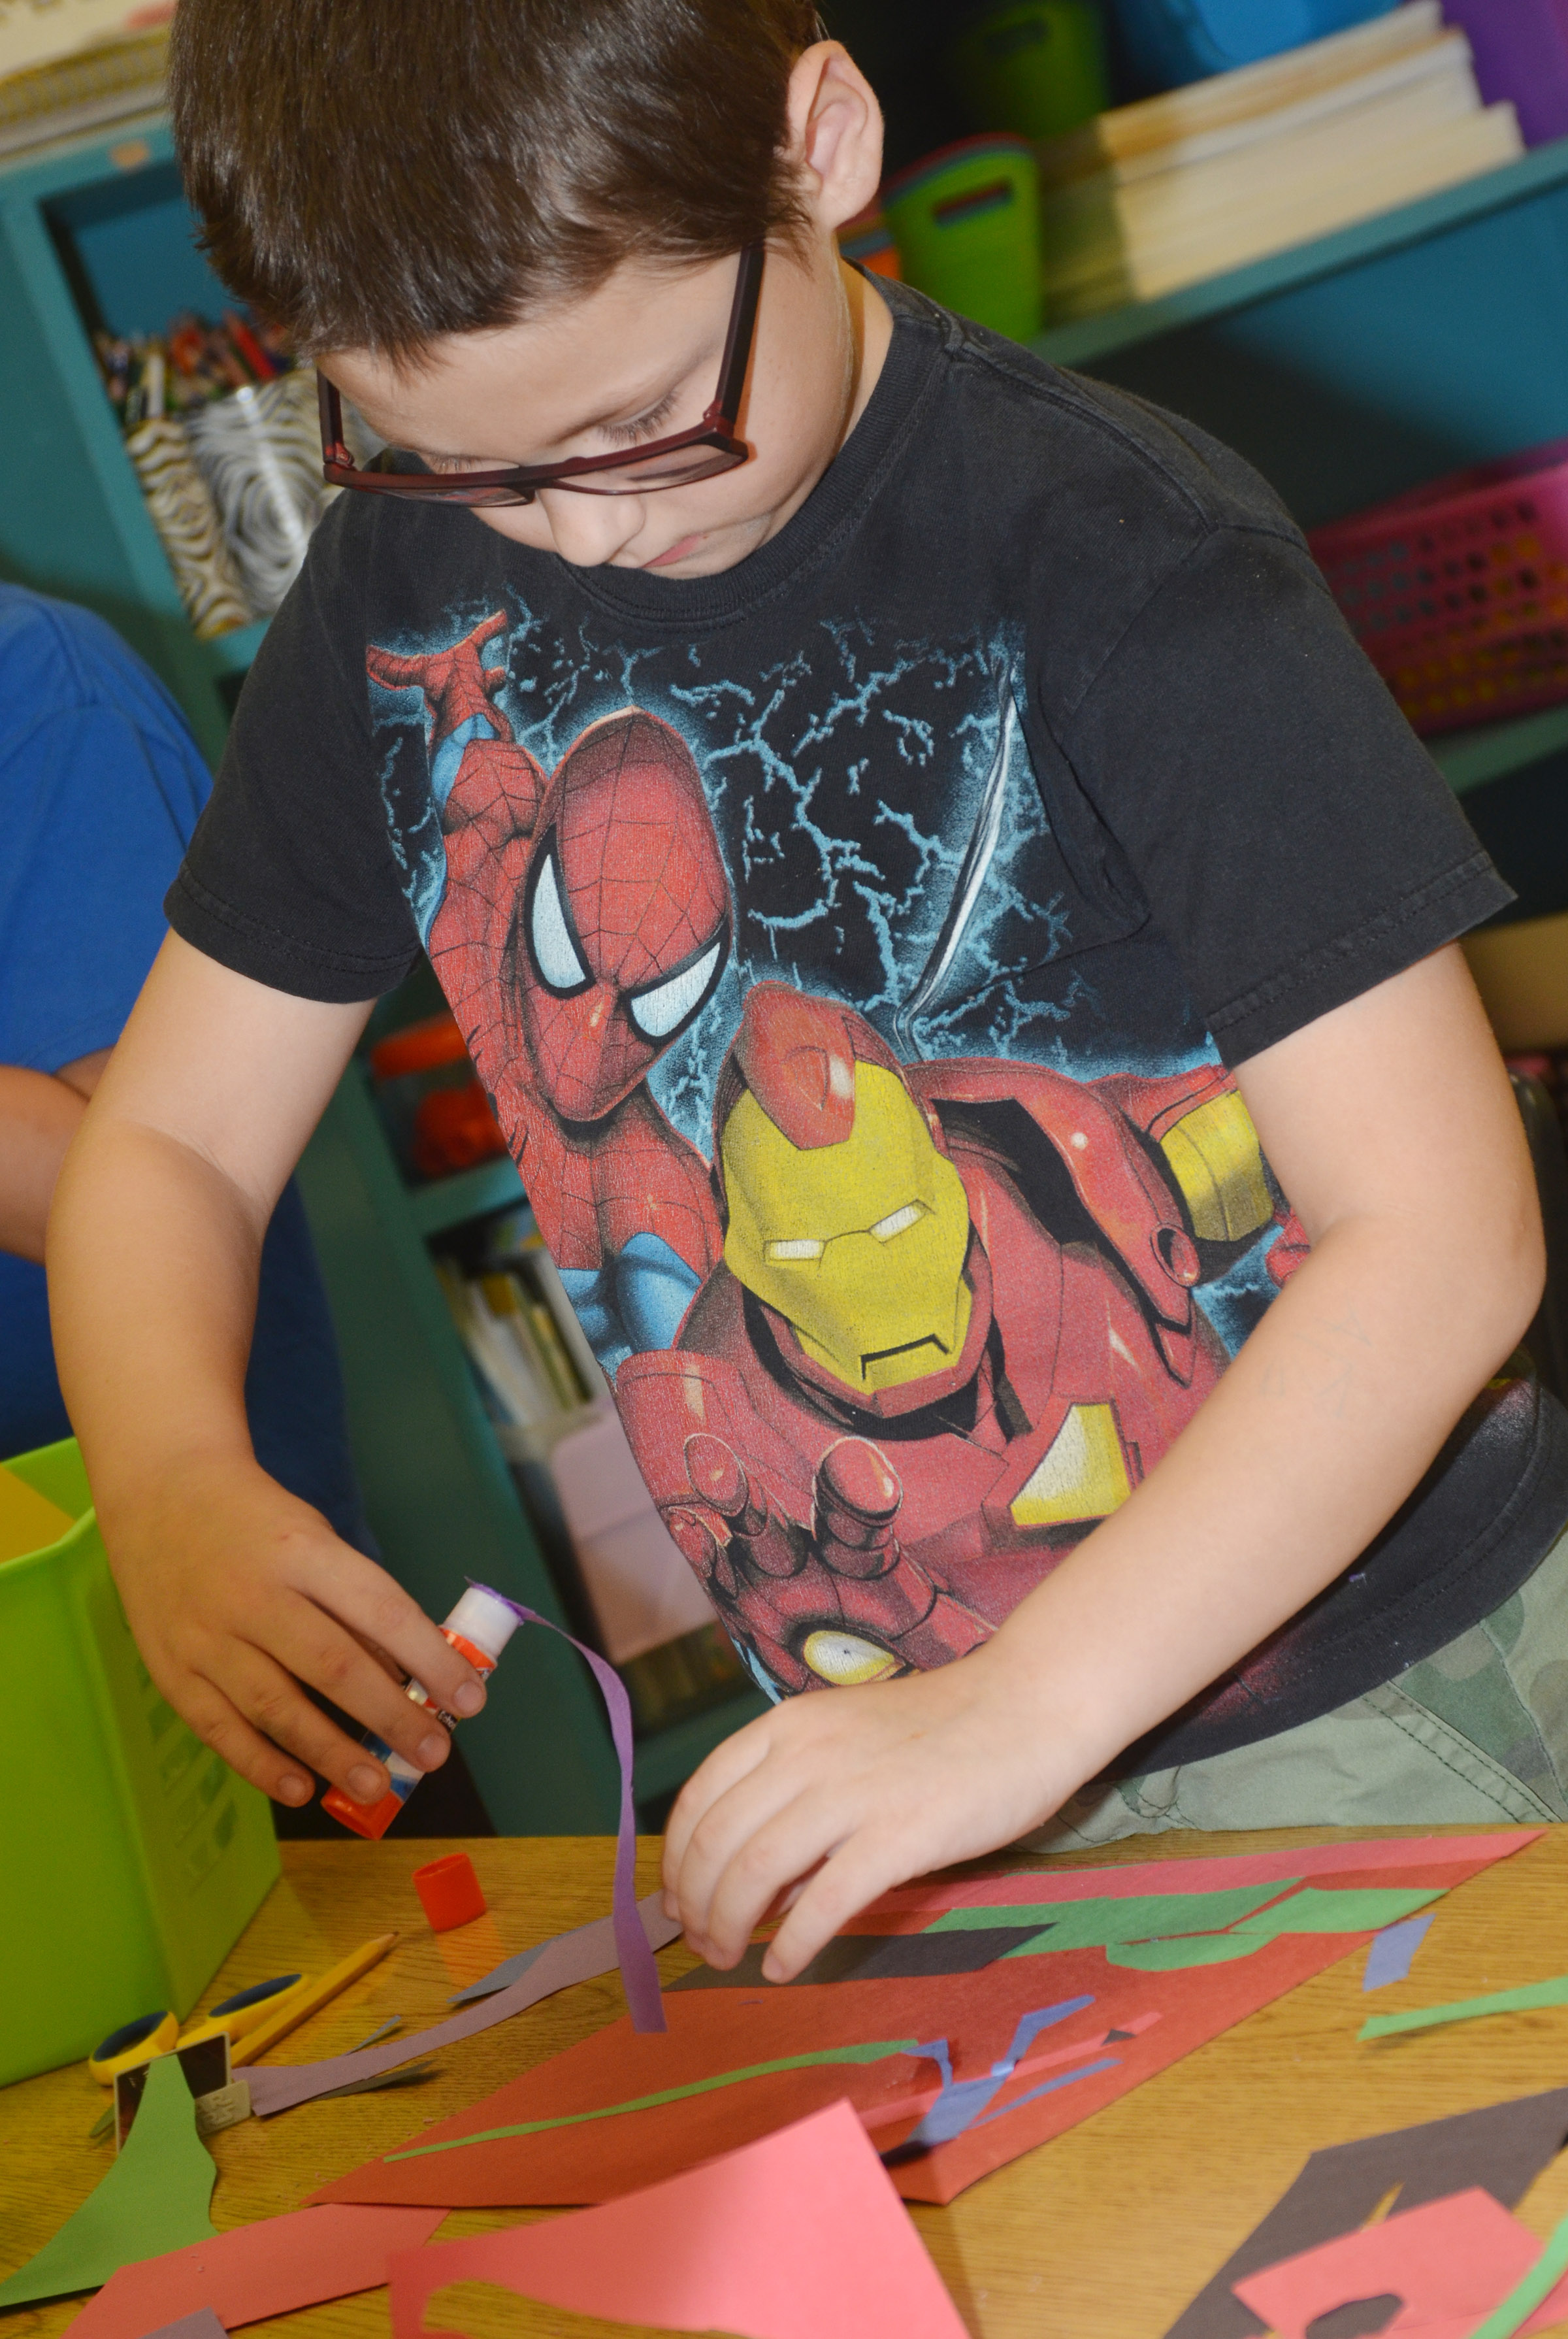 CES third-grader Cobain Carter glues shapes on his construction paper as he creates his drawing.